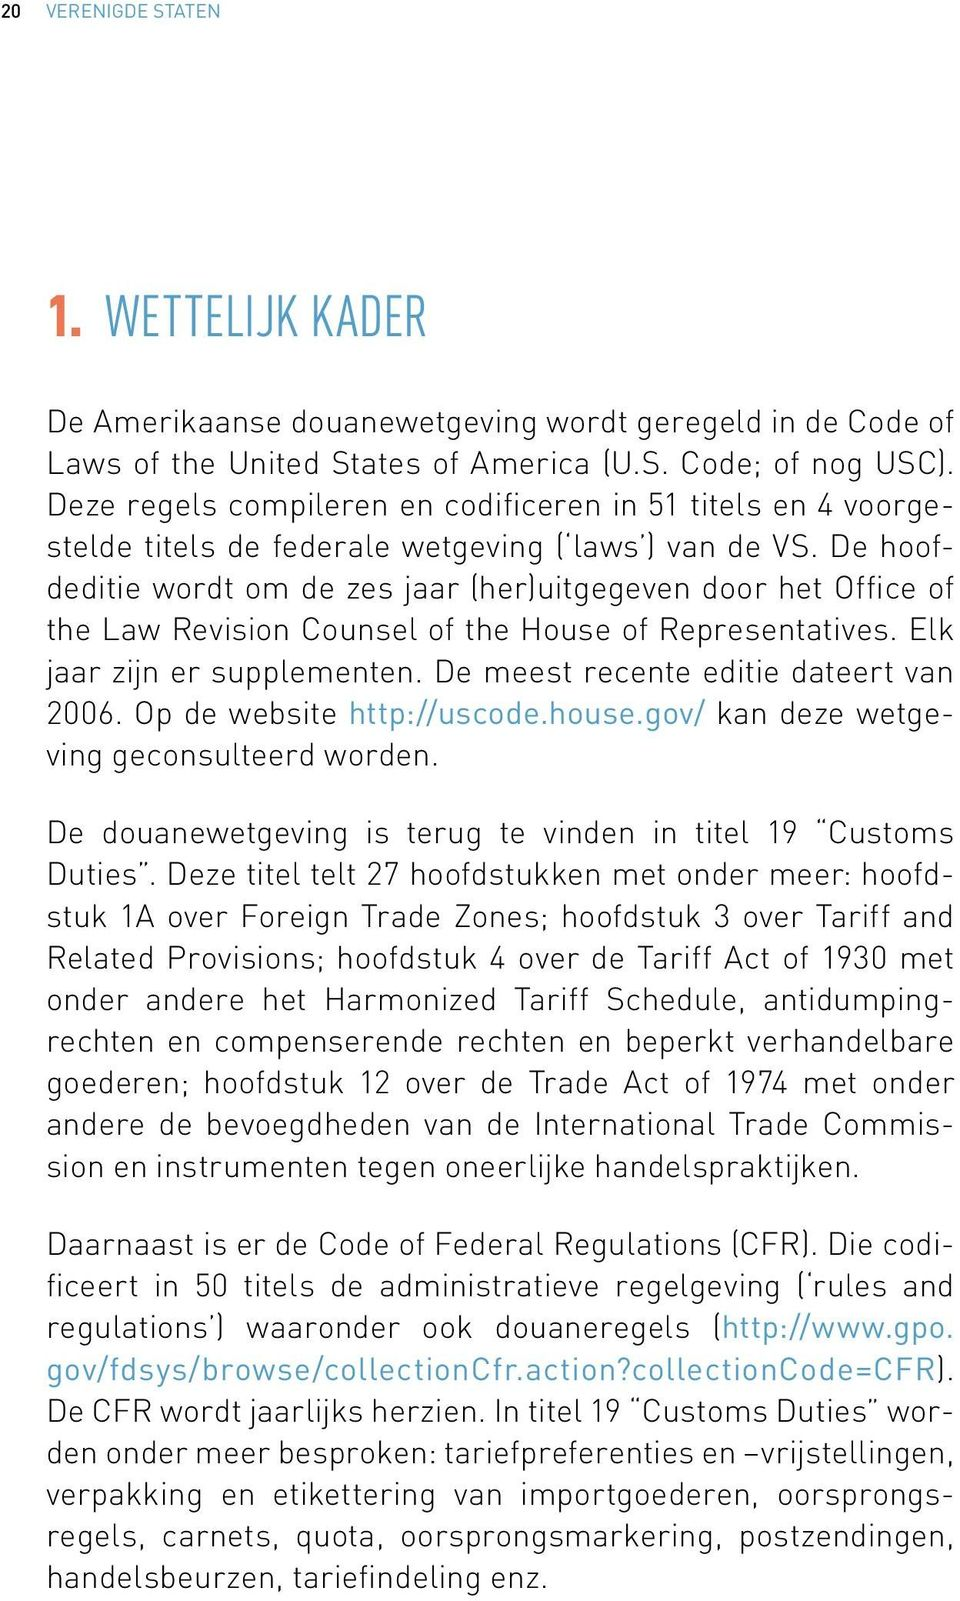 De hoofdeditie wordt om de zes jaar (her)uitgegeven door het Office of the Law Revision Counsel of the House of Representatives. Elk jaar zijn er supplementen.